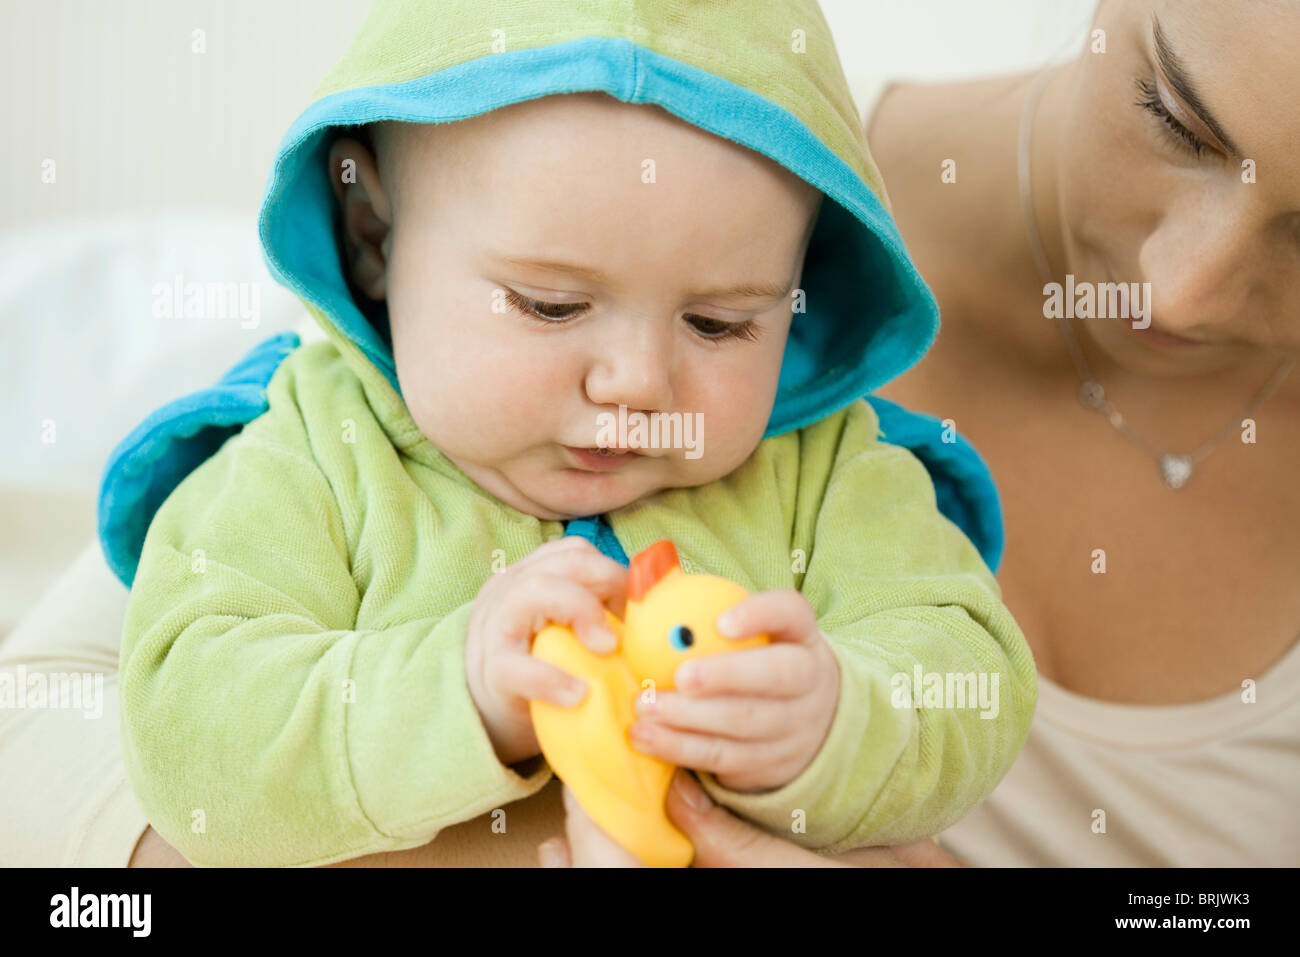 Baby playing with rubber duck before bathtime - Stock Image